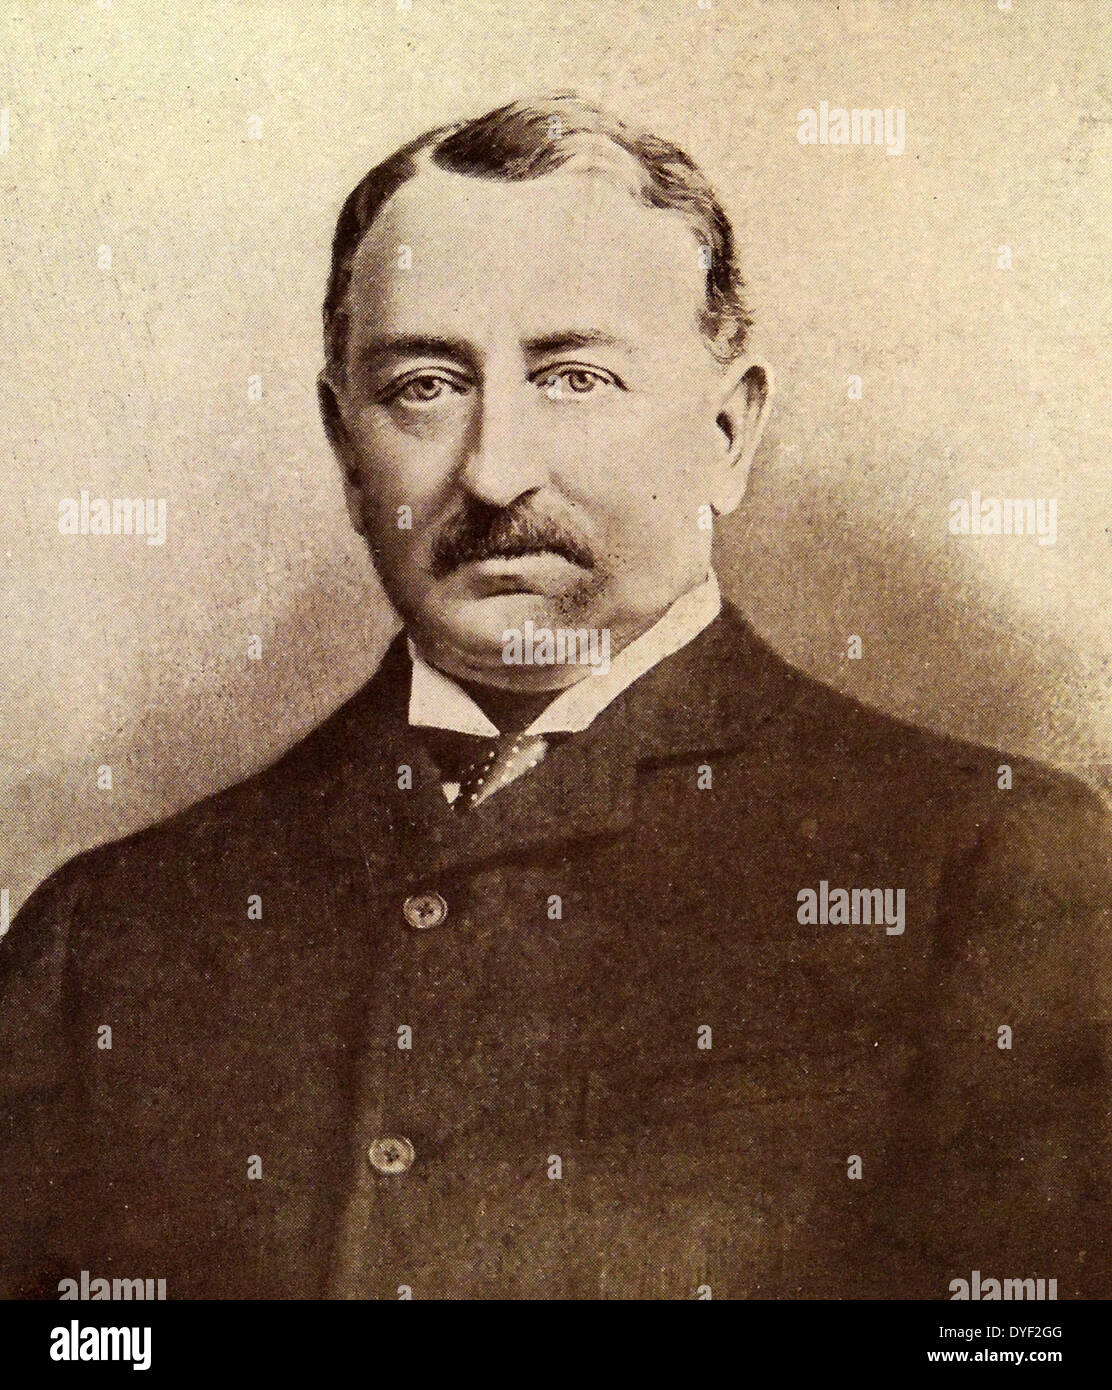 Cecil John Rhodes, English businessman, mining magnate, and politician in South Africa. - Stock Image